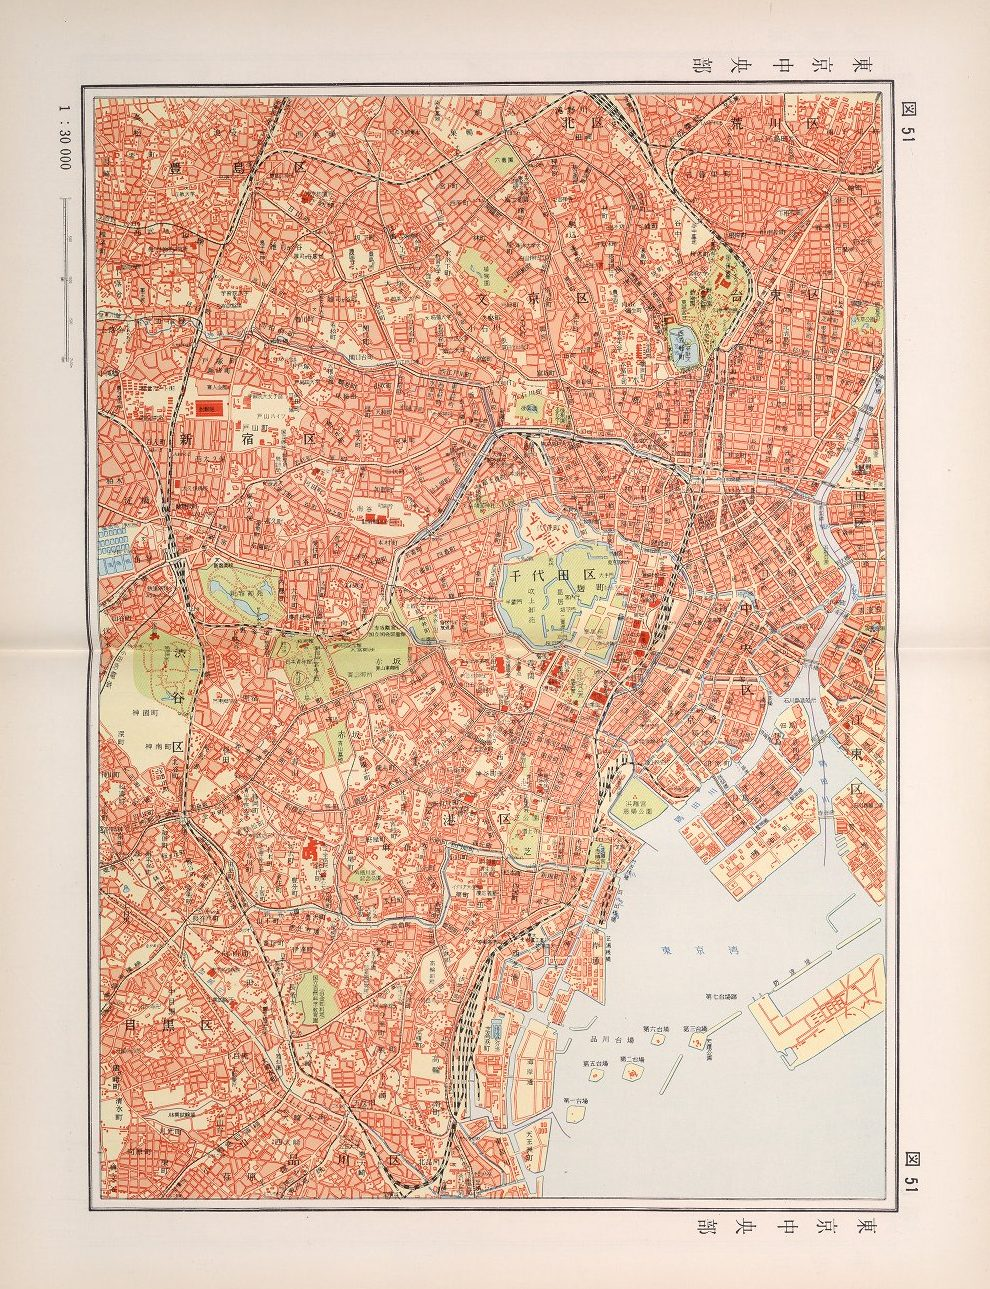 51. Central Tokyo, The Atlas of Japan Map